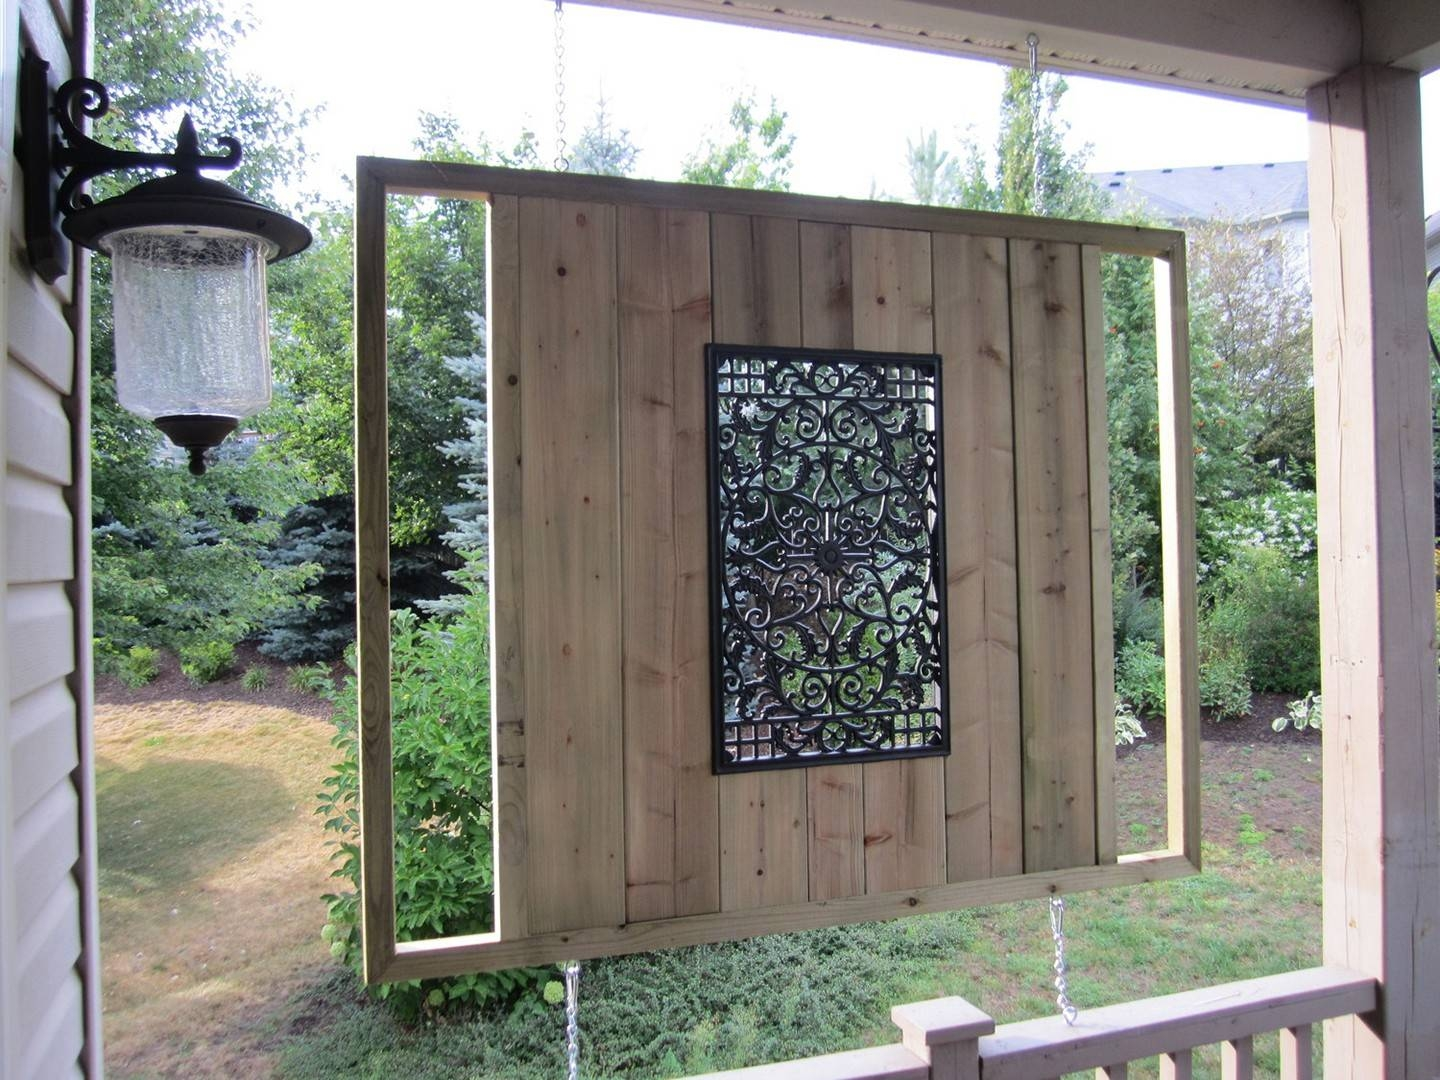 Diy Outdoor Metal Wallg Patio Decor Ideas Outstanding Wall Picture Intended For Recent Diy Garden Wall Art (View 6 of 25)